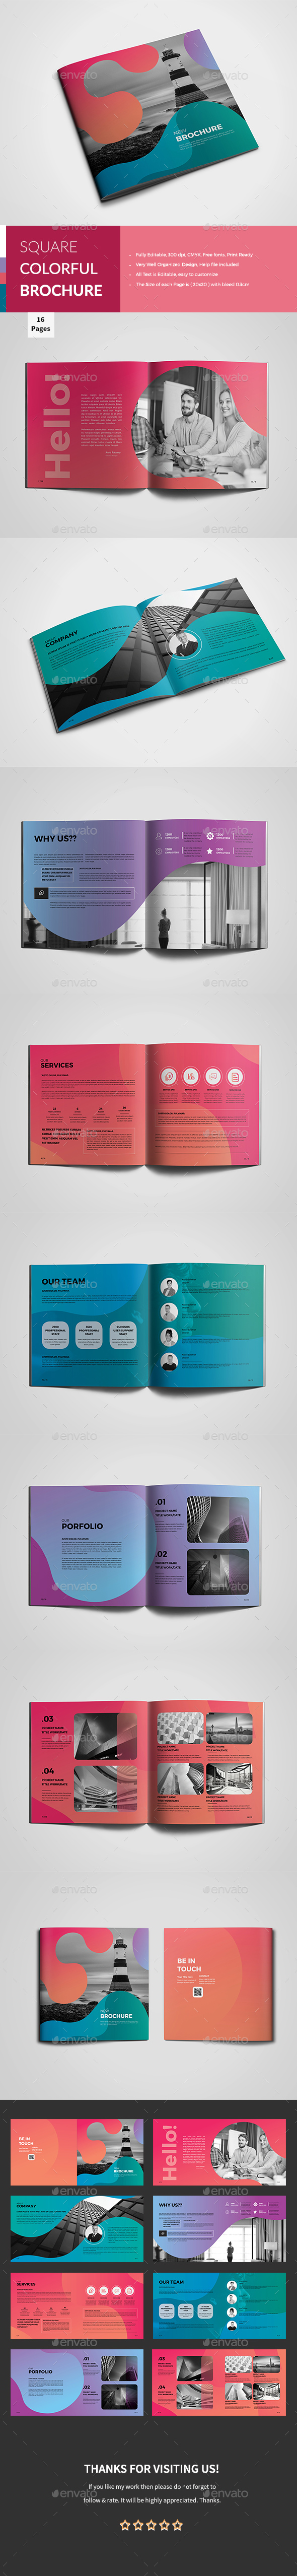 GraphicRiver Square Colorful Corporate Brochure 20739339